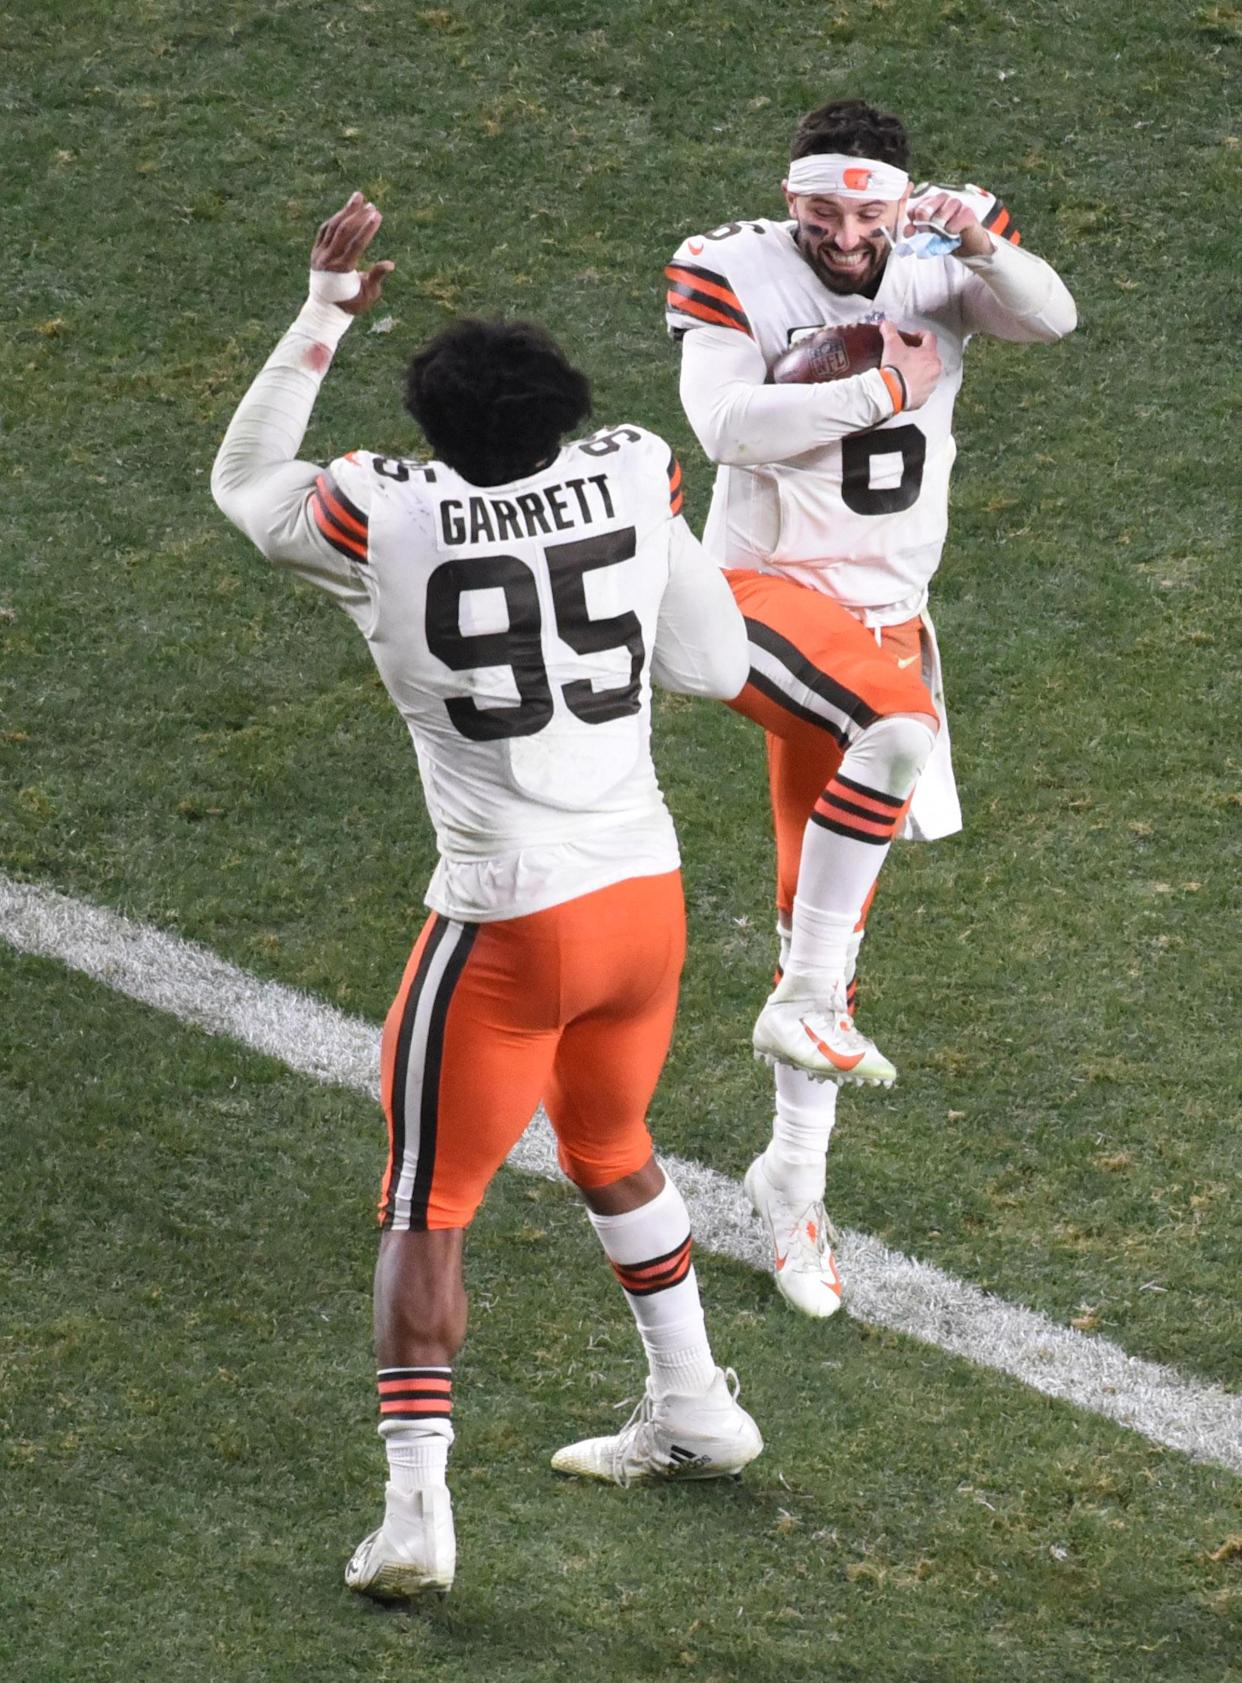 Cleveland Browns quarterback Baker Mayfield and defensive end Myles Garrett celebrate after the 2020 AFC Wild Card playoff game against the Pittsburgh Steelers at Heinz Field. (Philip G. Pavely/USA TODAY Sports)